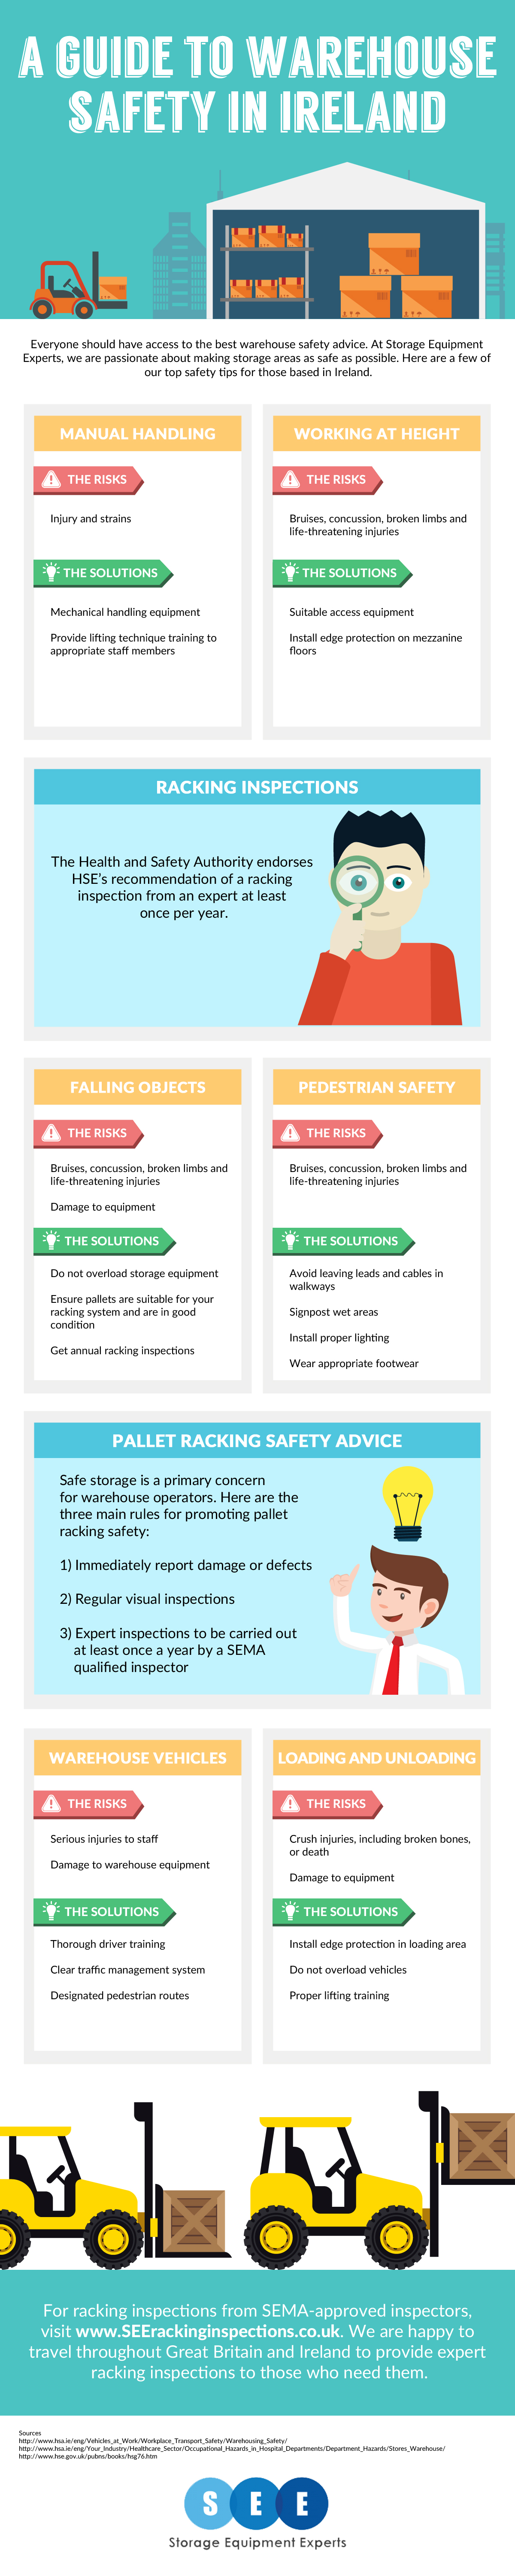 Warehouse safety in Ireland infographic